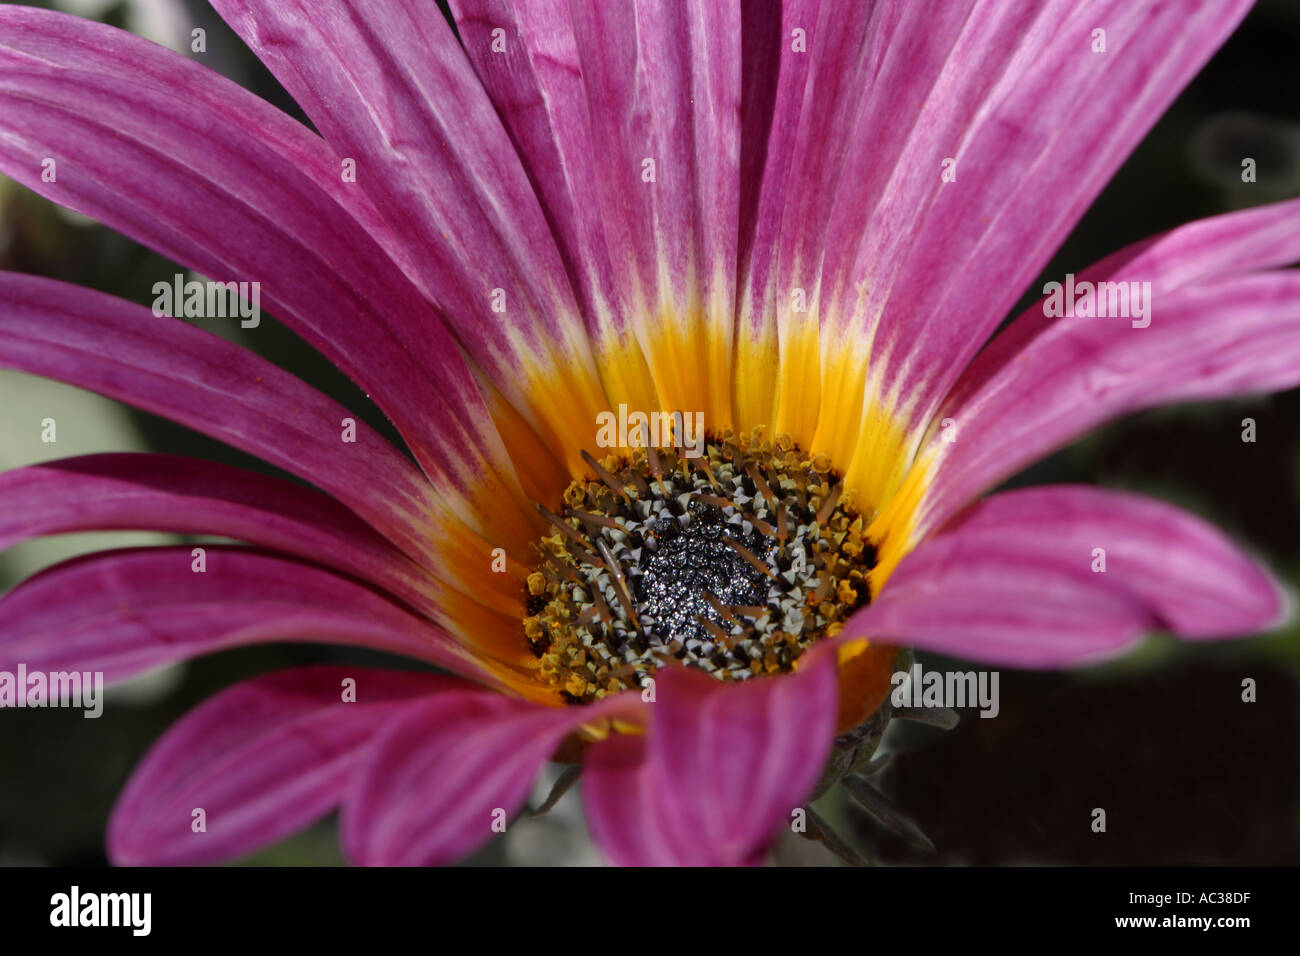 Arctotis flower stock photography of flowers a type of daisy arctotis flower stock photography of flowers a type of daisy growing in namaqualand south africa dhlflorist Images